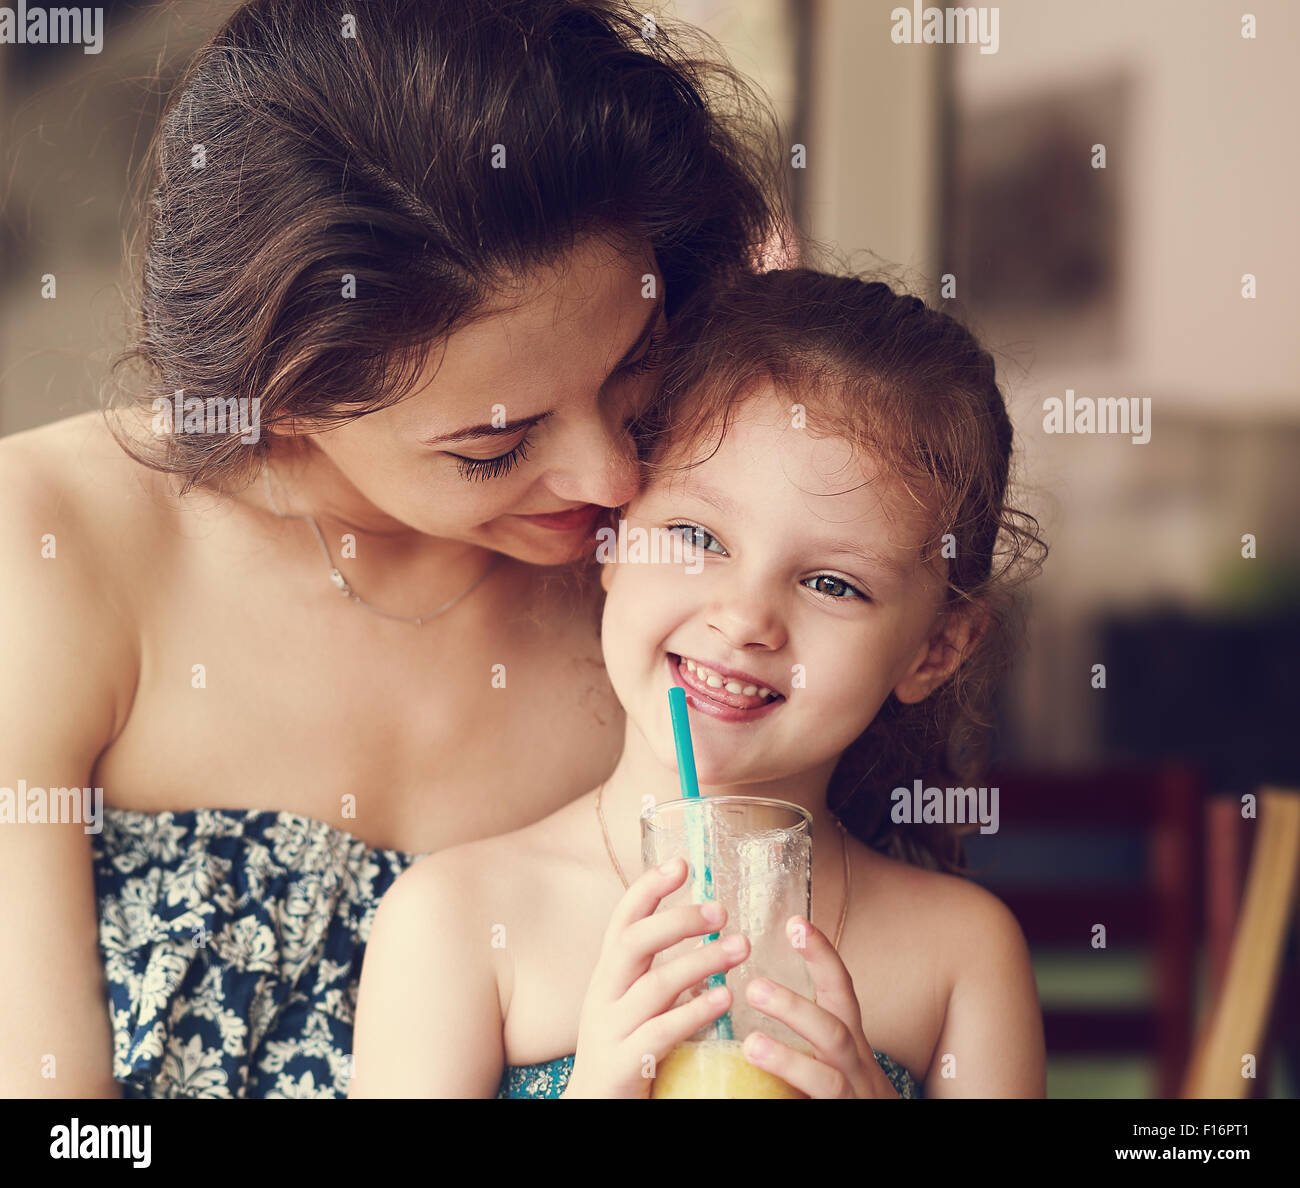 Happy mother looking and hugging her daughter who drinking citrus juice and smiling in restaurant. Closeup portrait - Stock Image